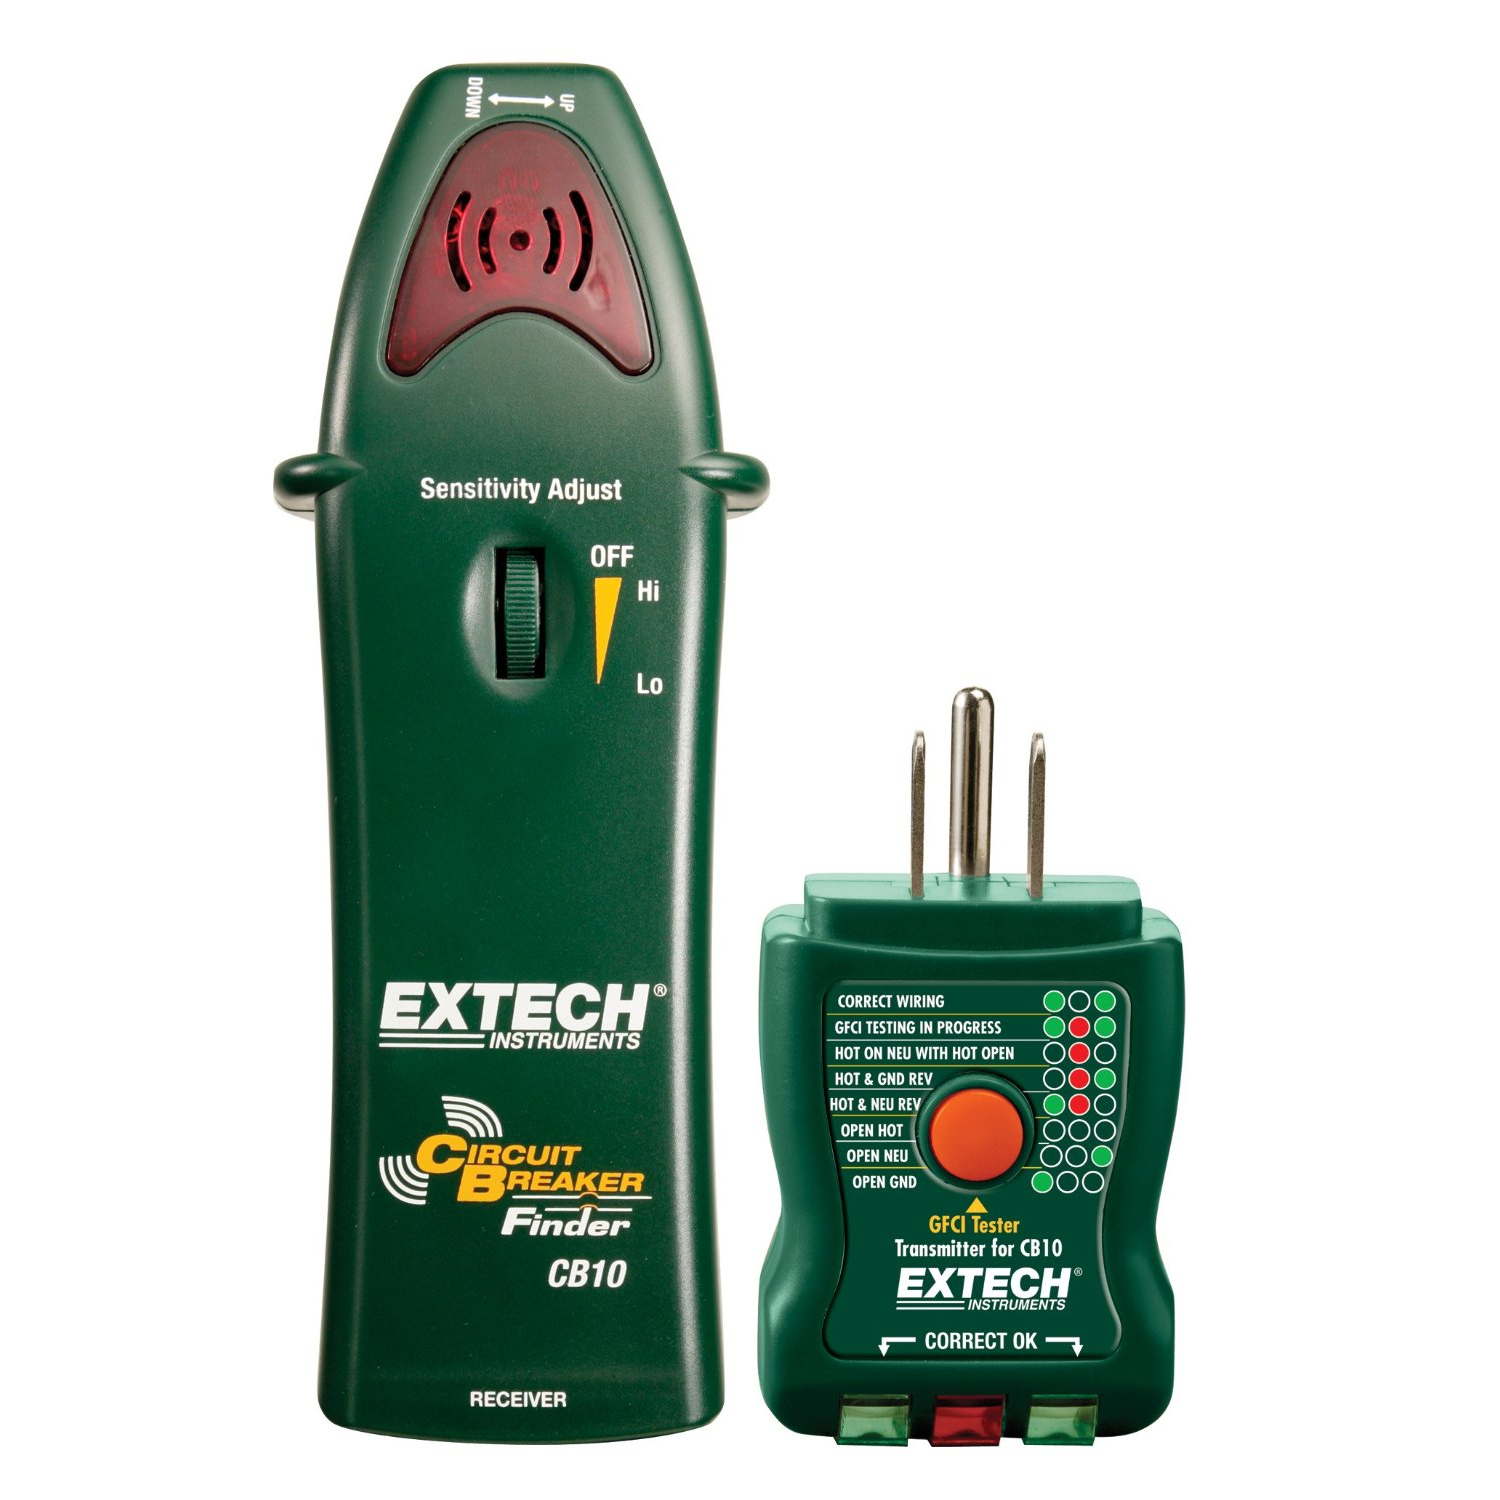 Extech CB10 GFCI Circuit Breaker Finder and Outlet Tester